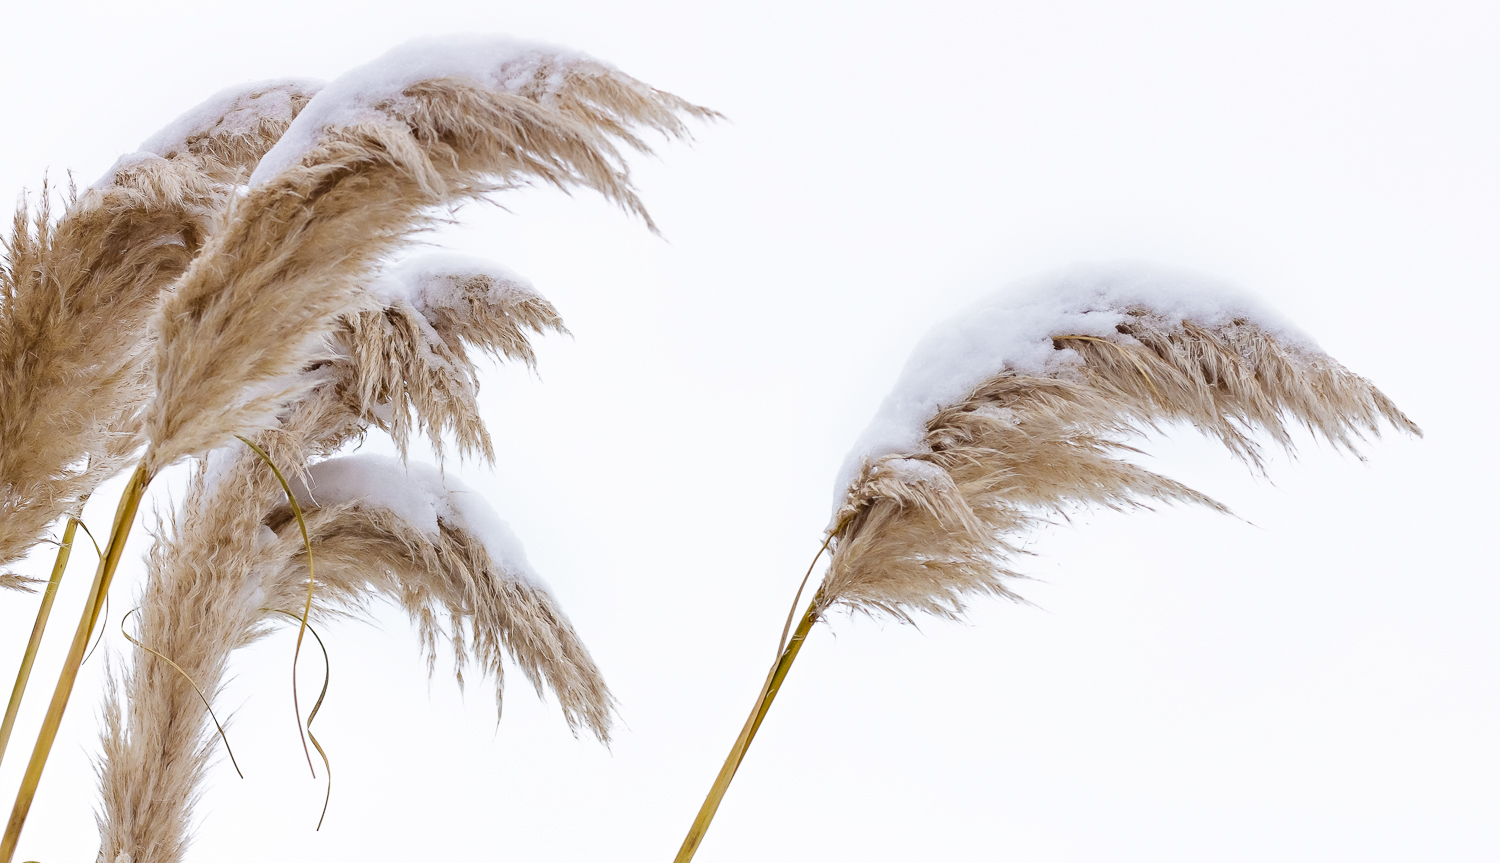 Snow covered pampas grass flowing in the winter wind